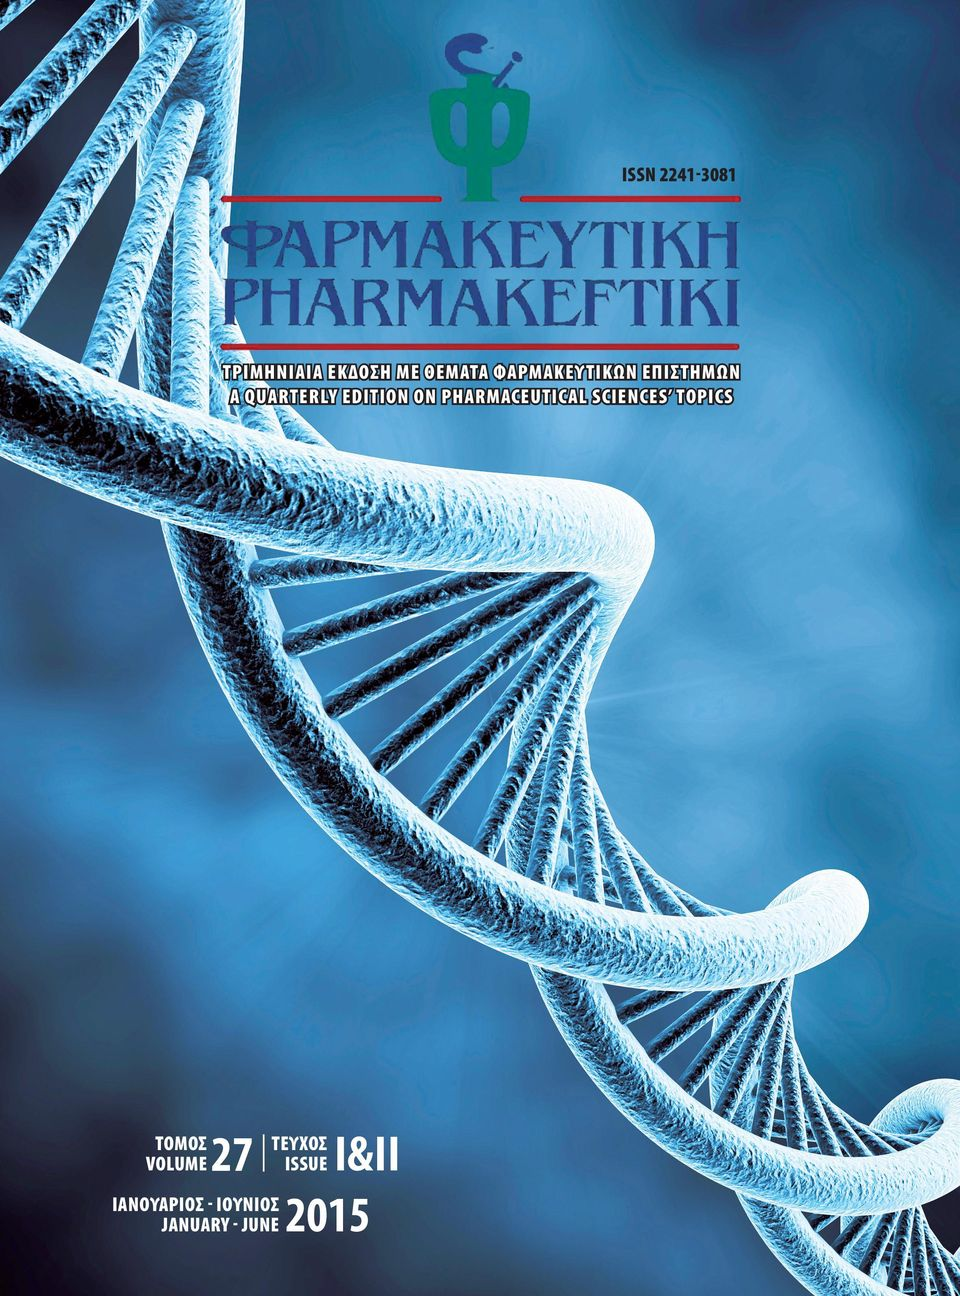 EDITION ON PHARMACEUTICAL SCIENCES TOPICS ISSUE I&II 27